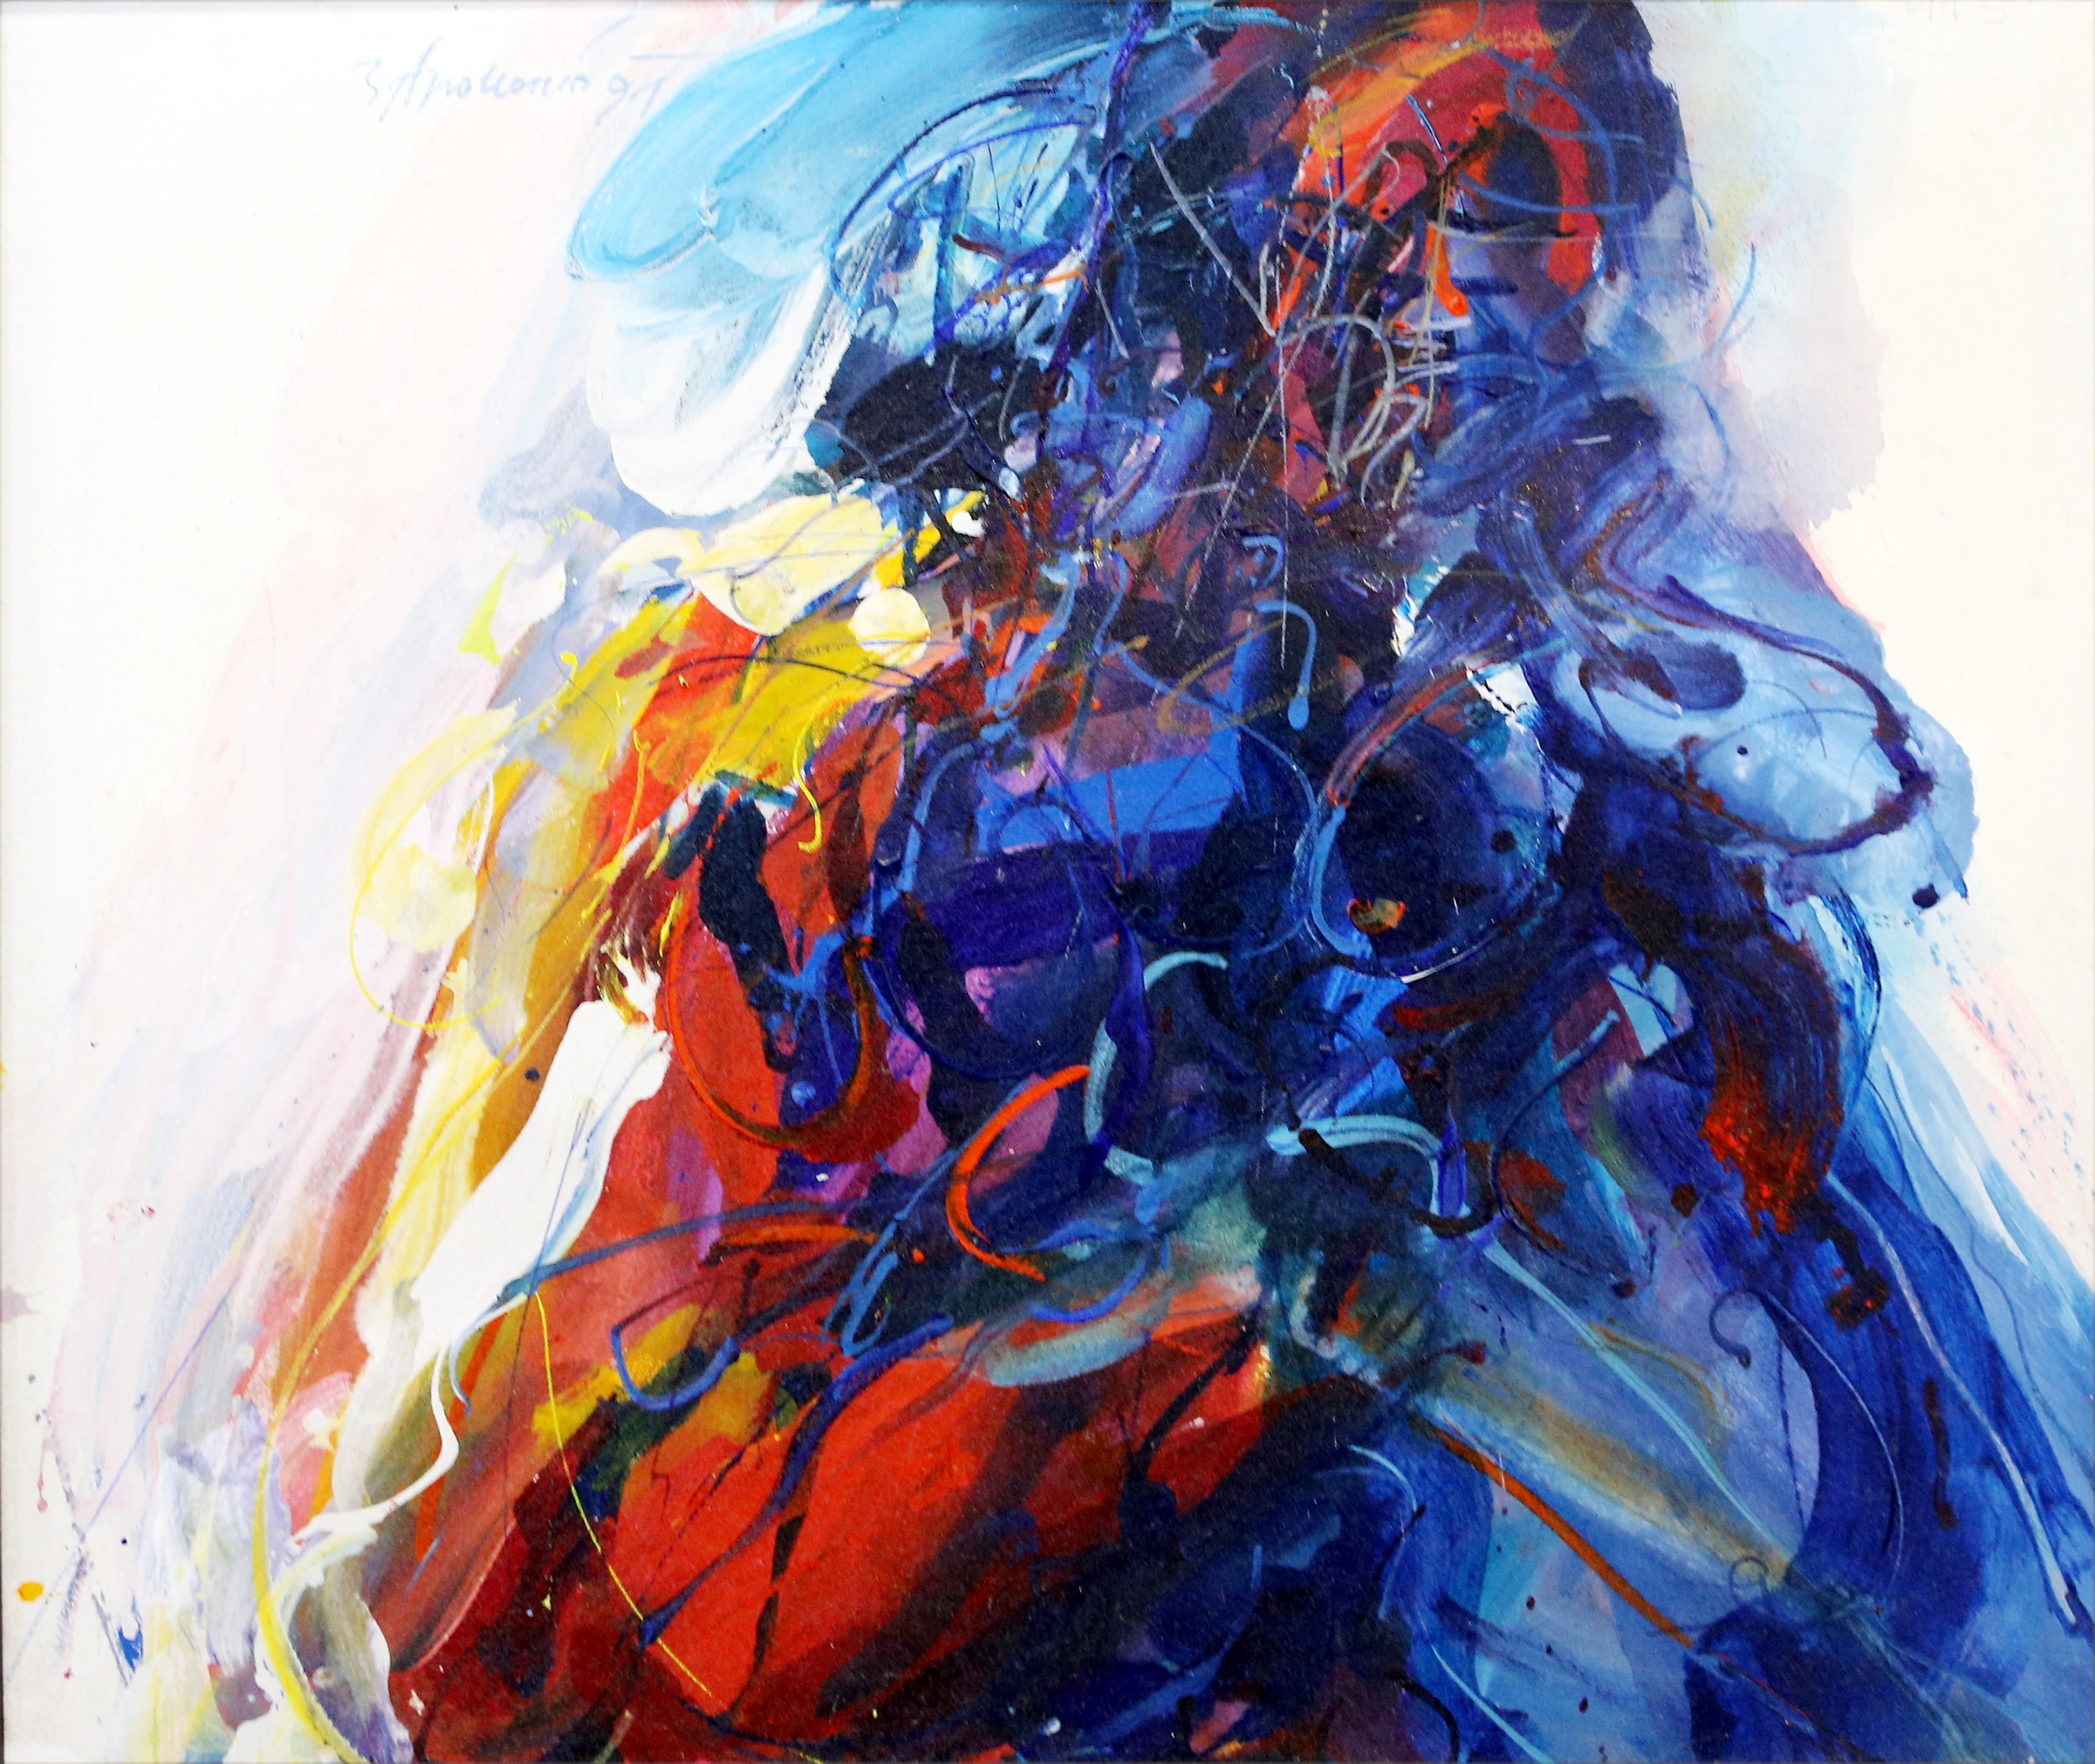 Couple artwork by Zvest Apollonio - art listed for sale on Artplode